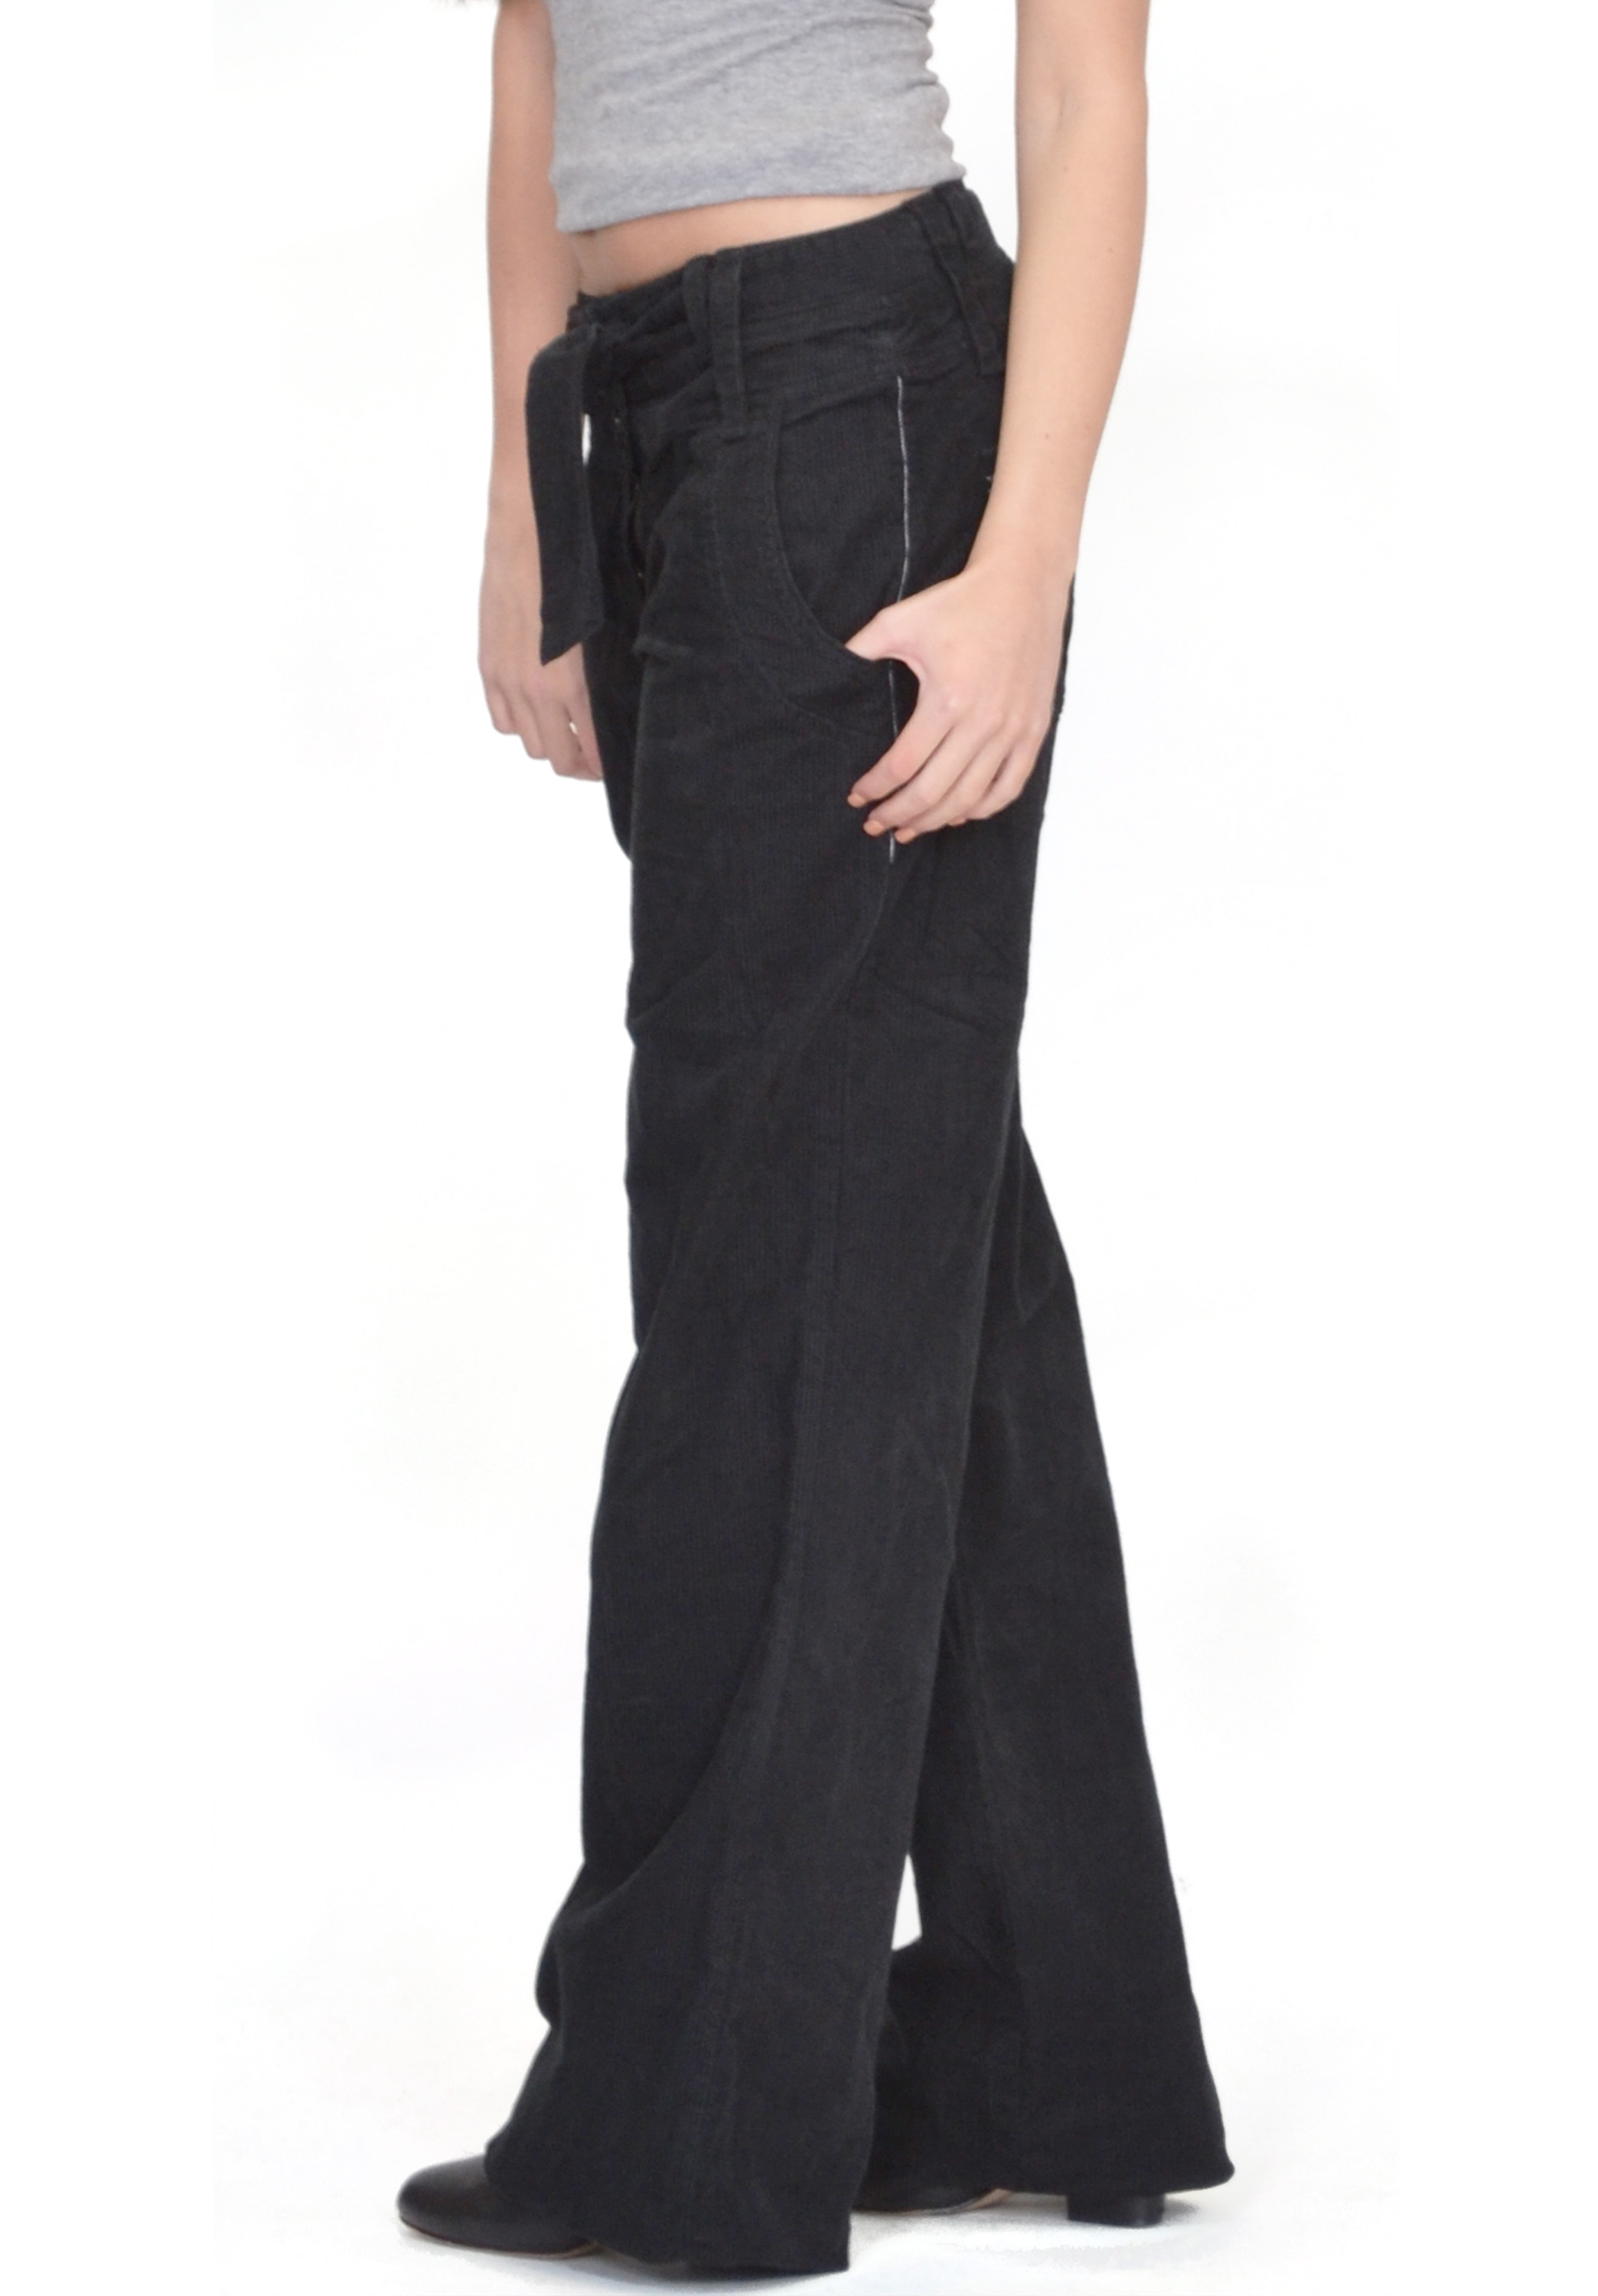 Shop Online Womens Elasticated Waist Stretch Ribbed Bootleg Trousers Ladies Pull ON Pants Finely Ribbed Nurse £ - £ LADIES STRETCH TROUSERS PACK OF 2 BOOTLEG STRETCH RIBBED TROUSERS BLACK SIZE £ - £ Prime. AFS Mens Corduroy Trousers Cotton Jeans Elasticated Adjustable Waist Pants. £